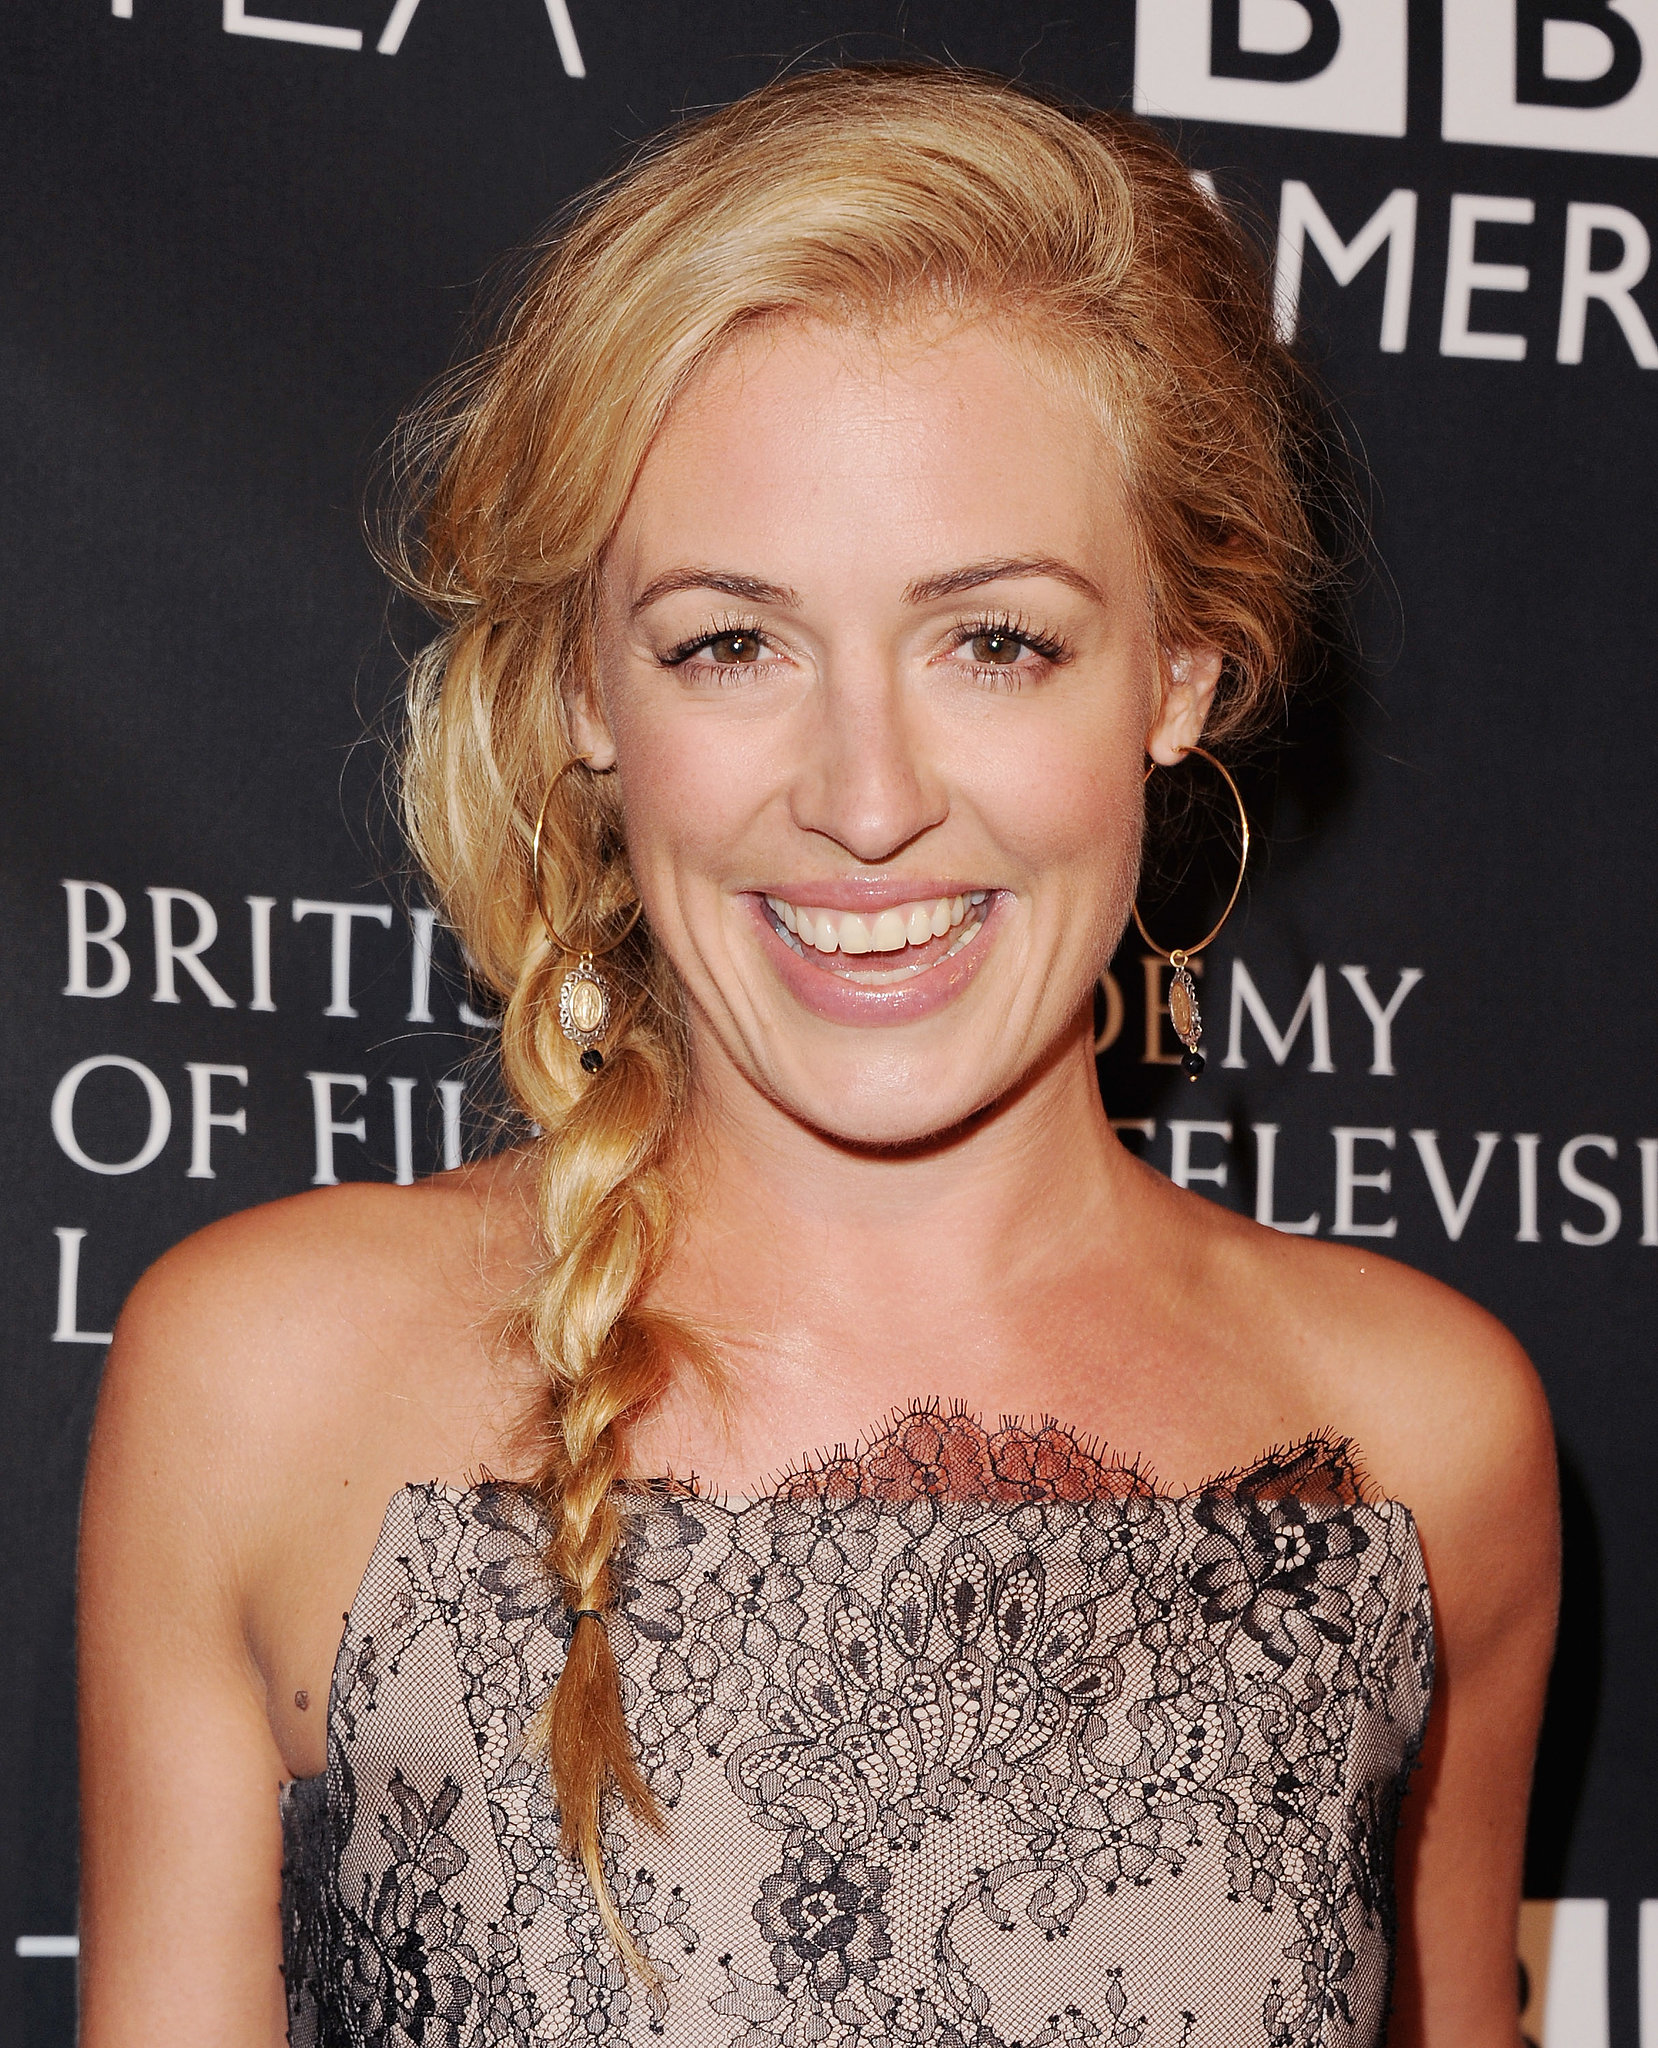 Cat Deeley kept it casual with a simple side braid at the BAFTA LA TV Tea.